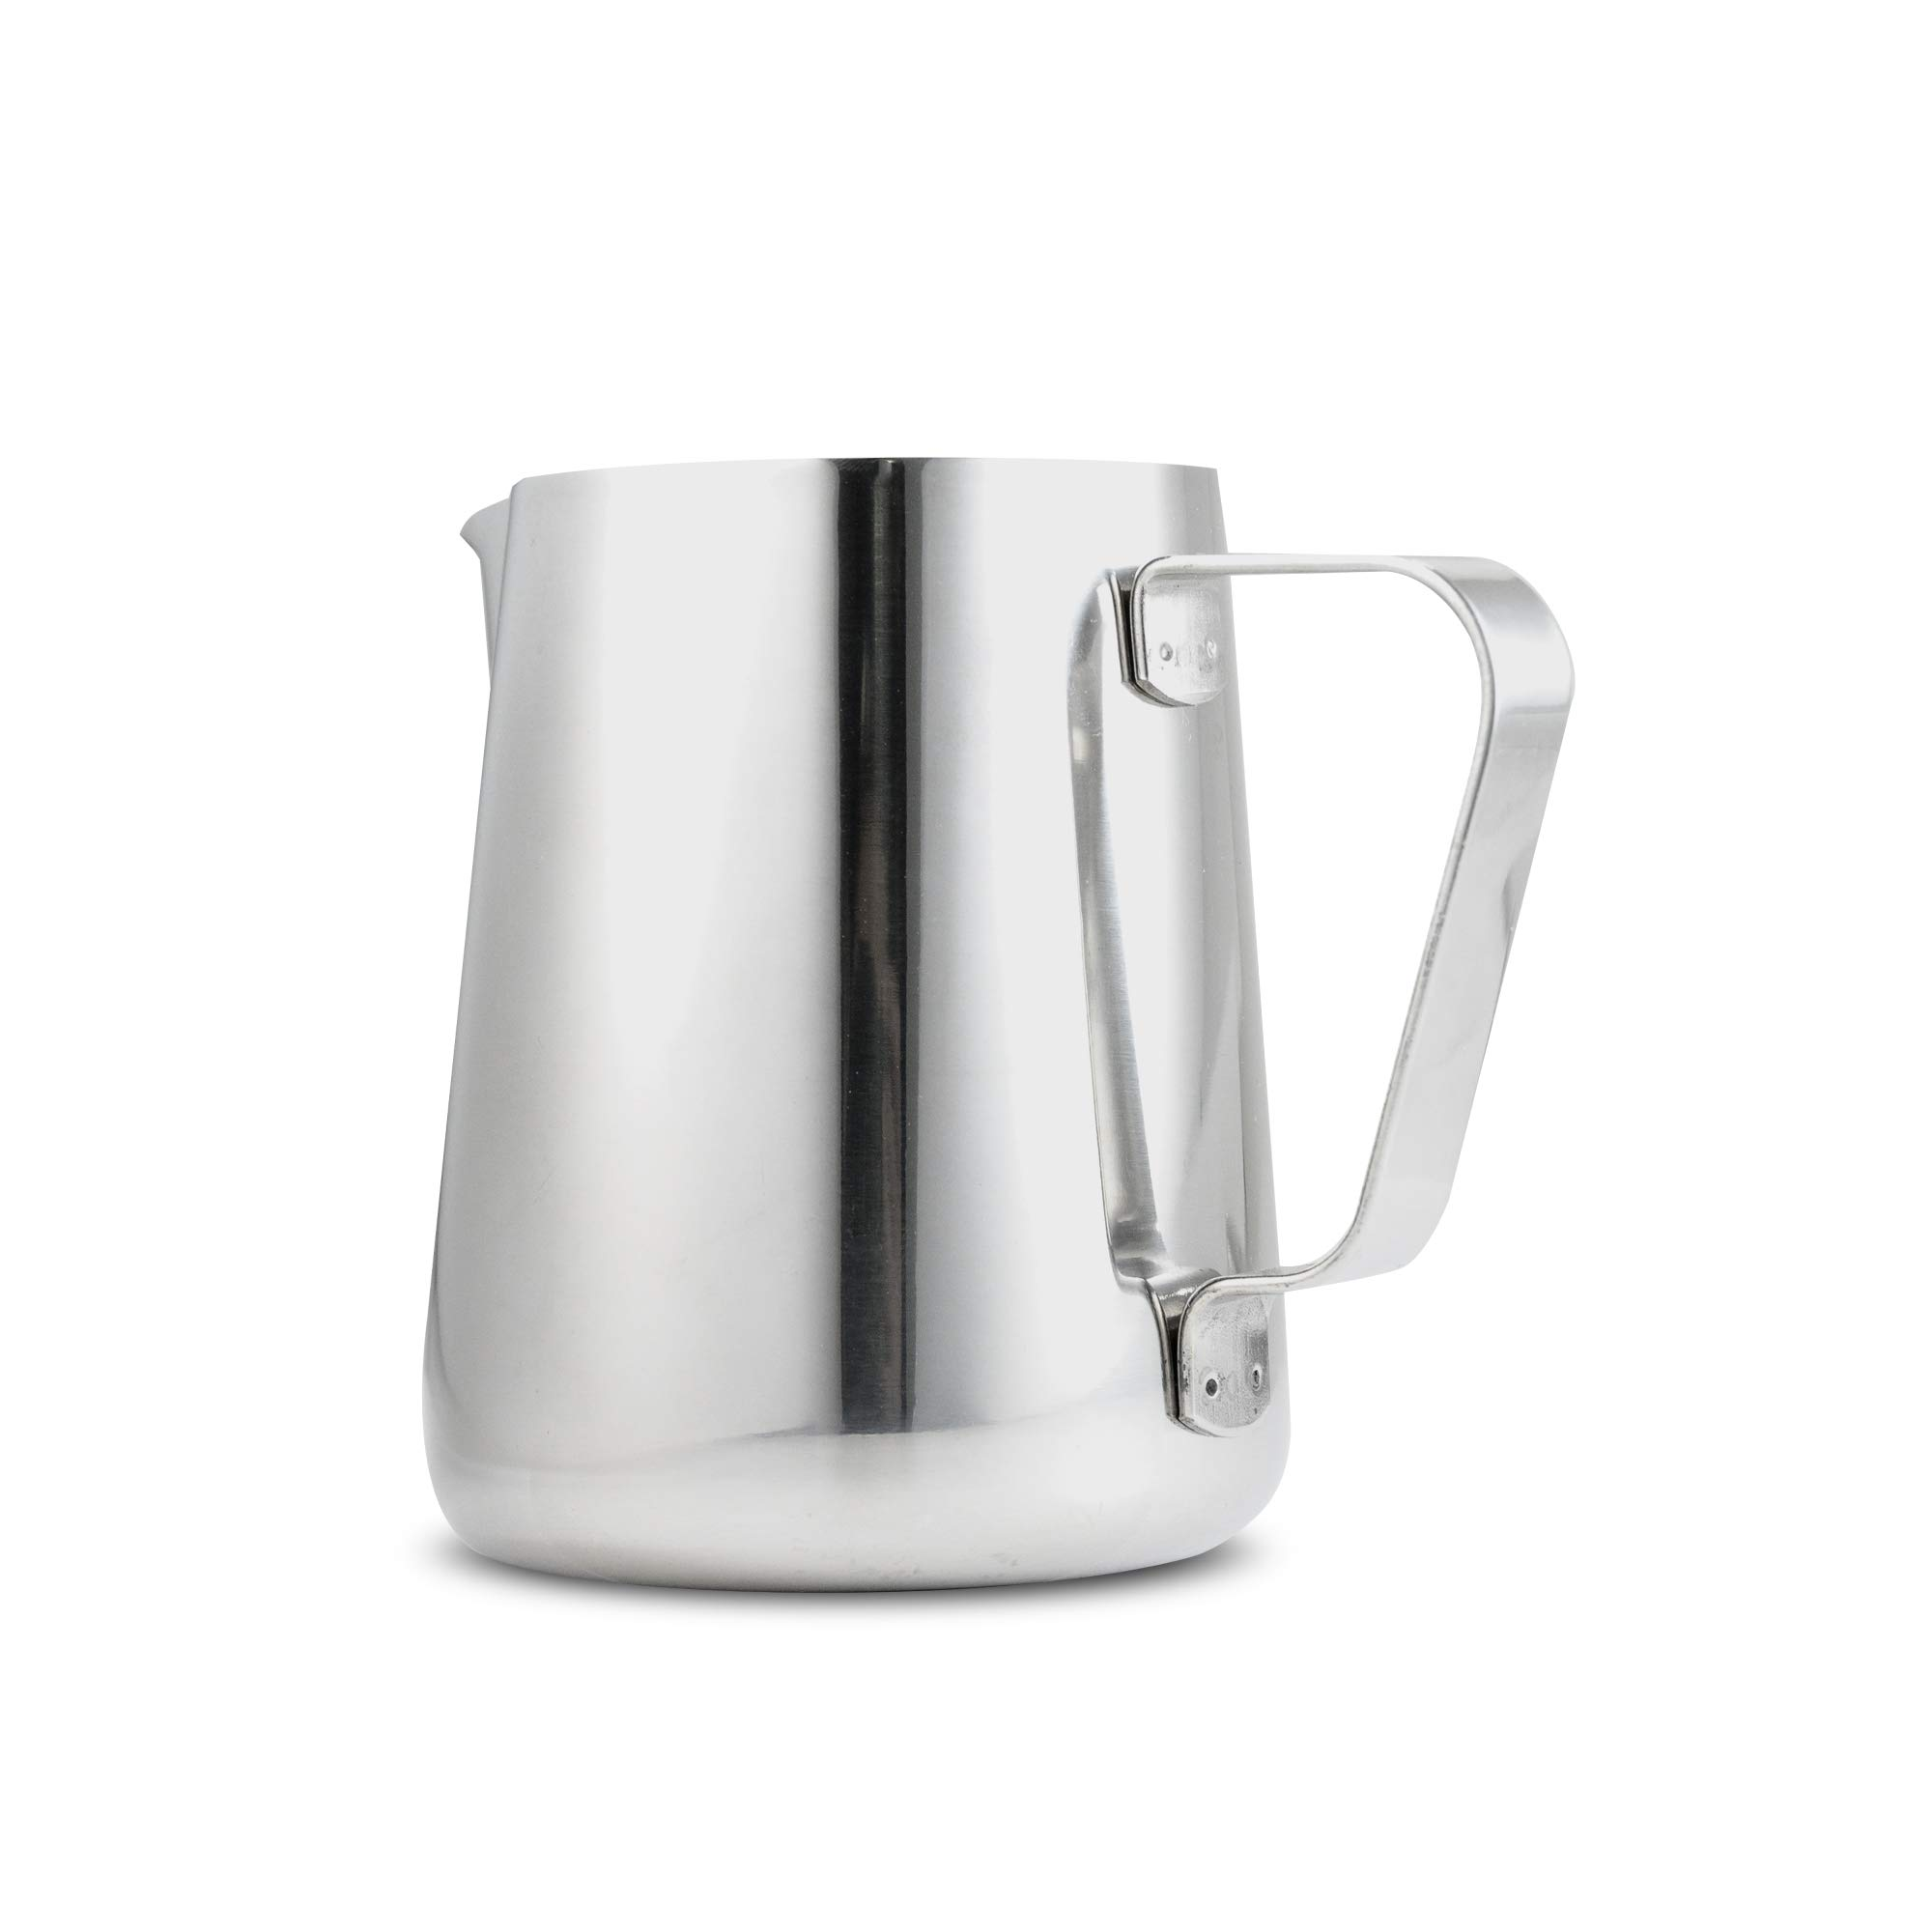 Espresso Parts EP_PITCHER32 Milk frothing pitcher, 32oz, Stainless Steel by EspressoParts